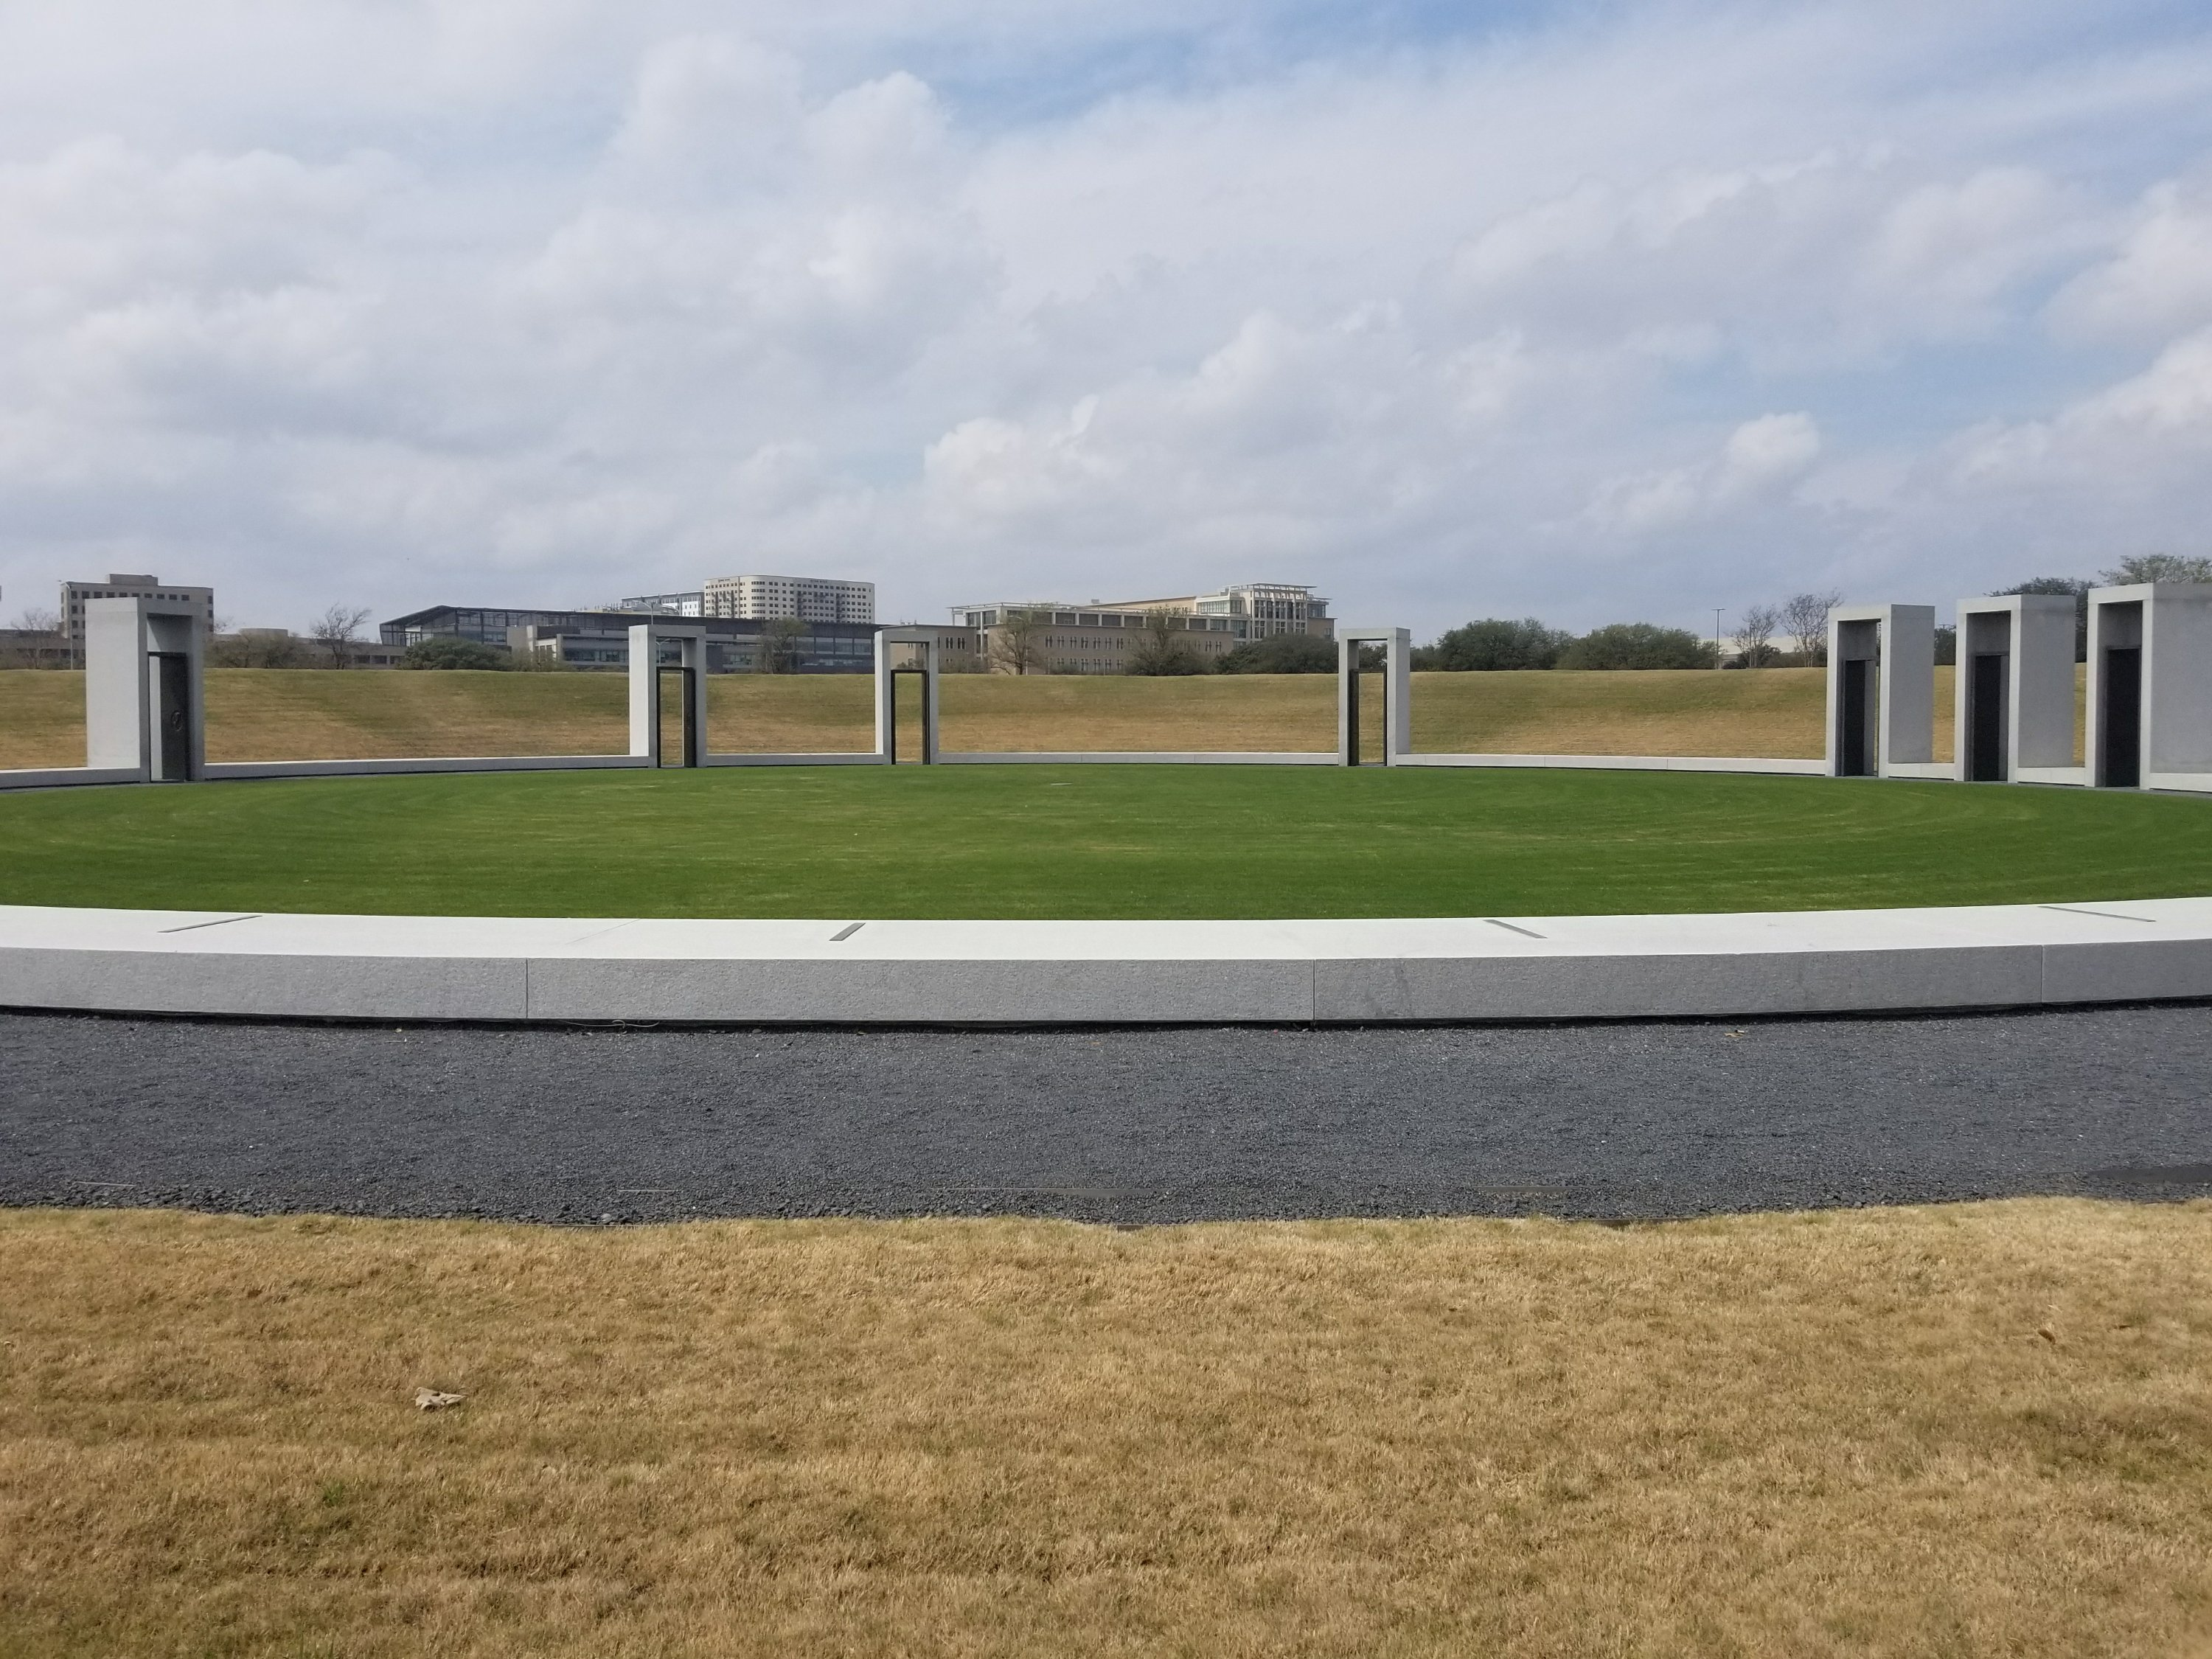 Aggie Bonfire Memorial at Texas A&M University